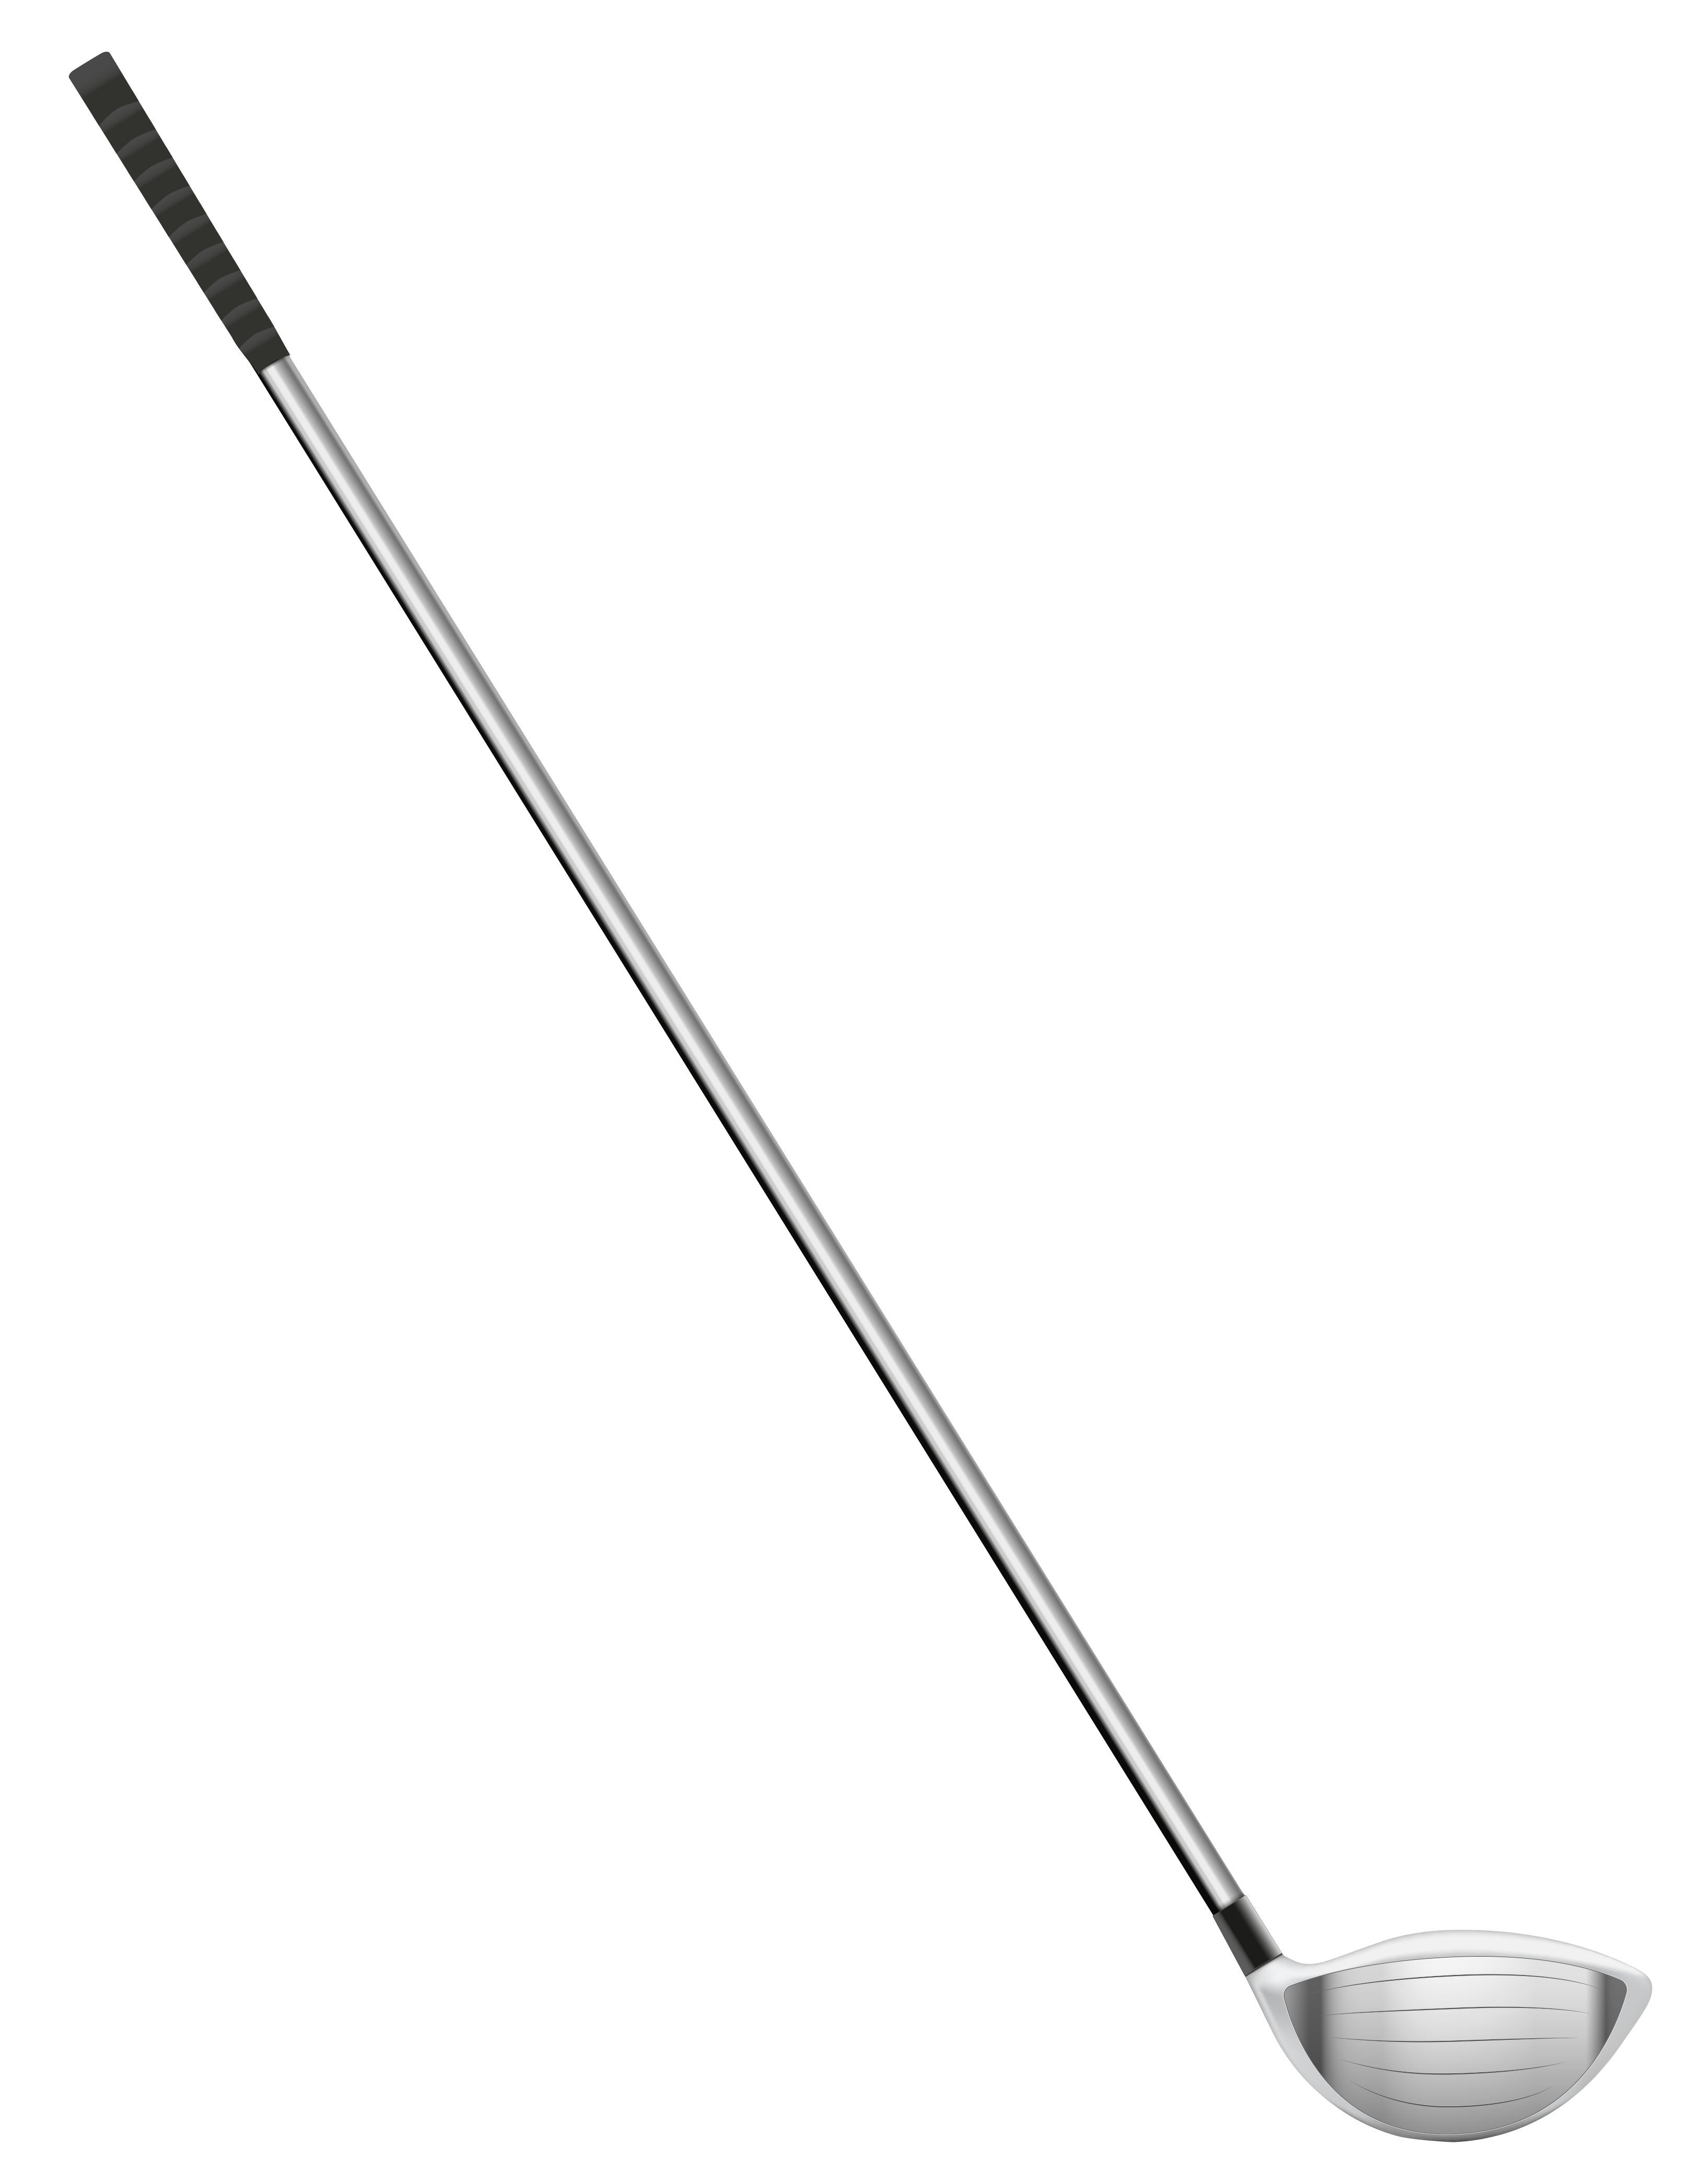 Club clipart sport wallpaper. Golf stick png picture